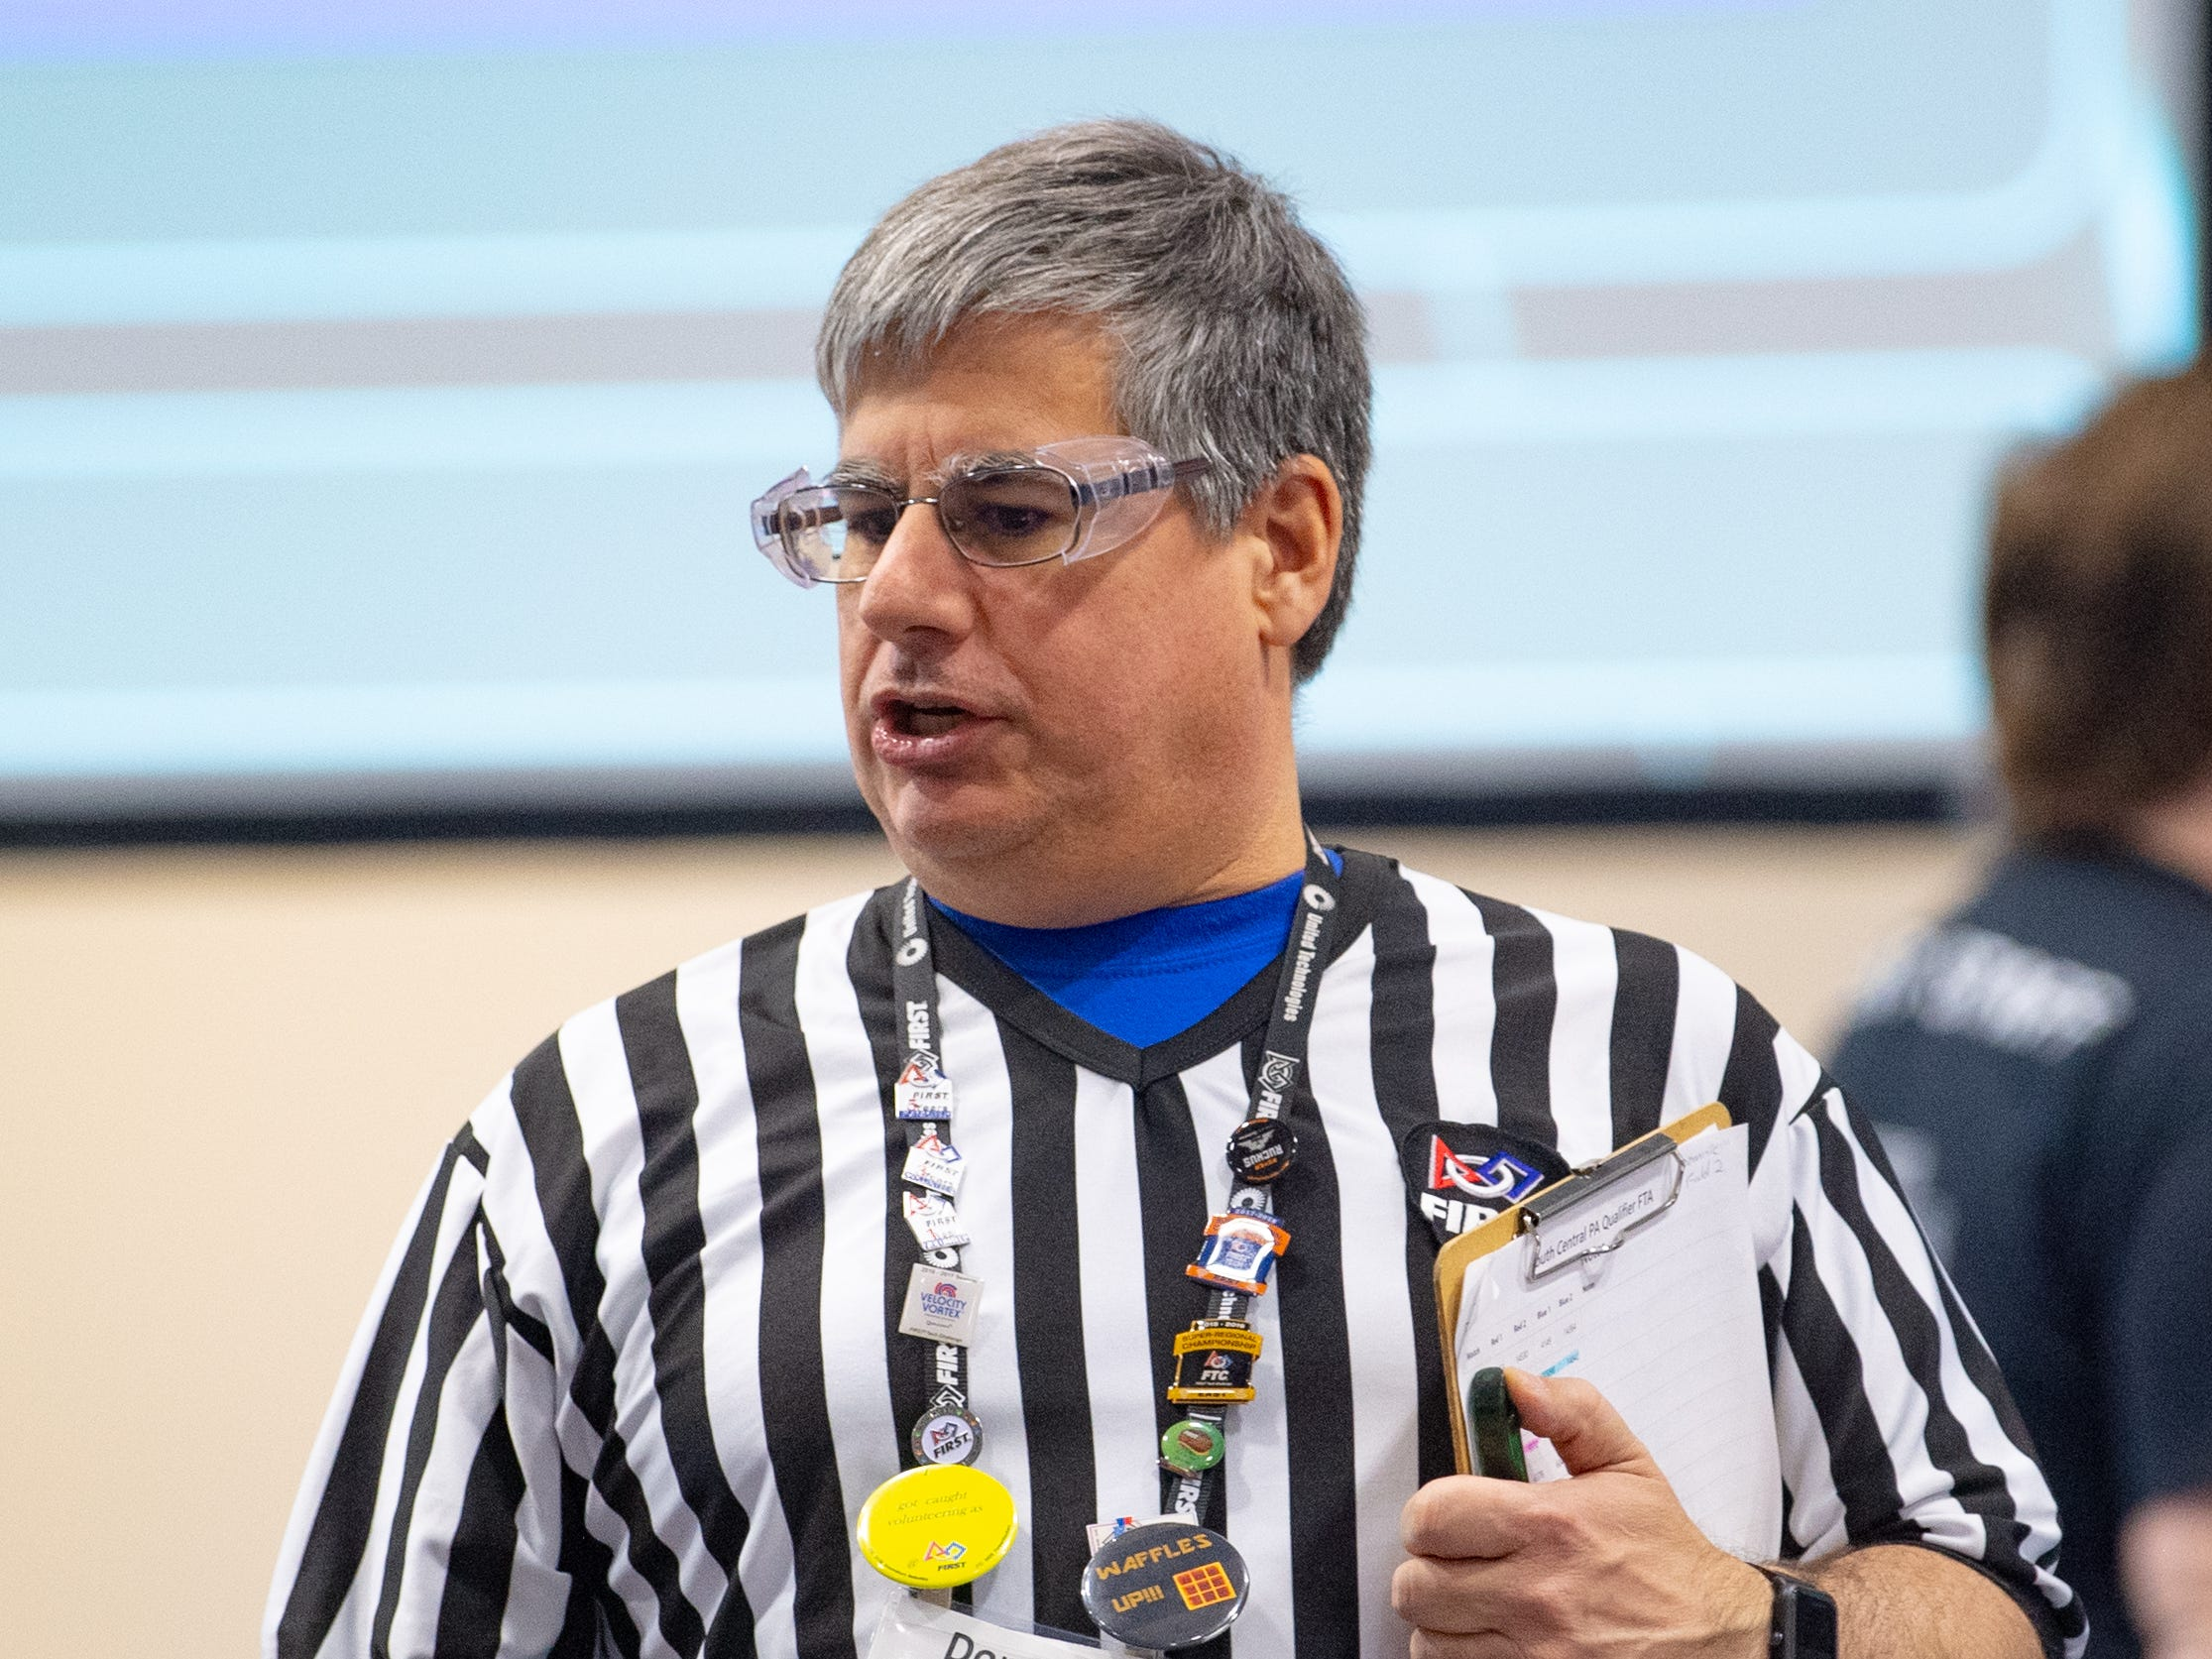 Refs like Dominic Pirocchi officiate the matches to ensure fairness during the First Tech Challenge robotics competition, February 2, 2019.